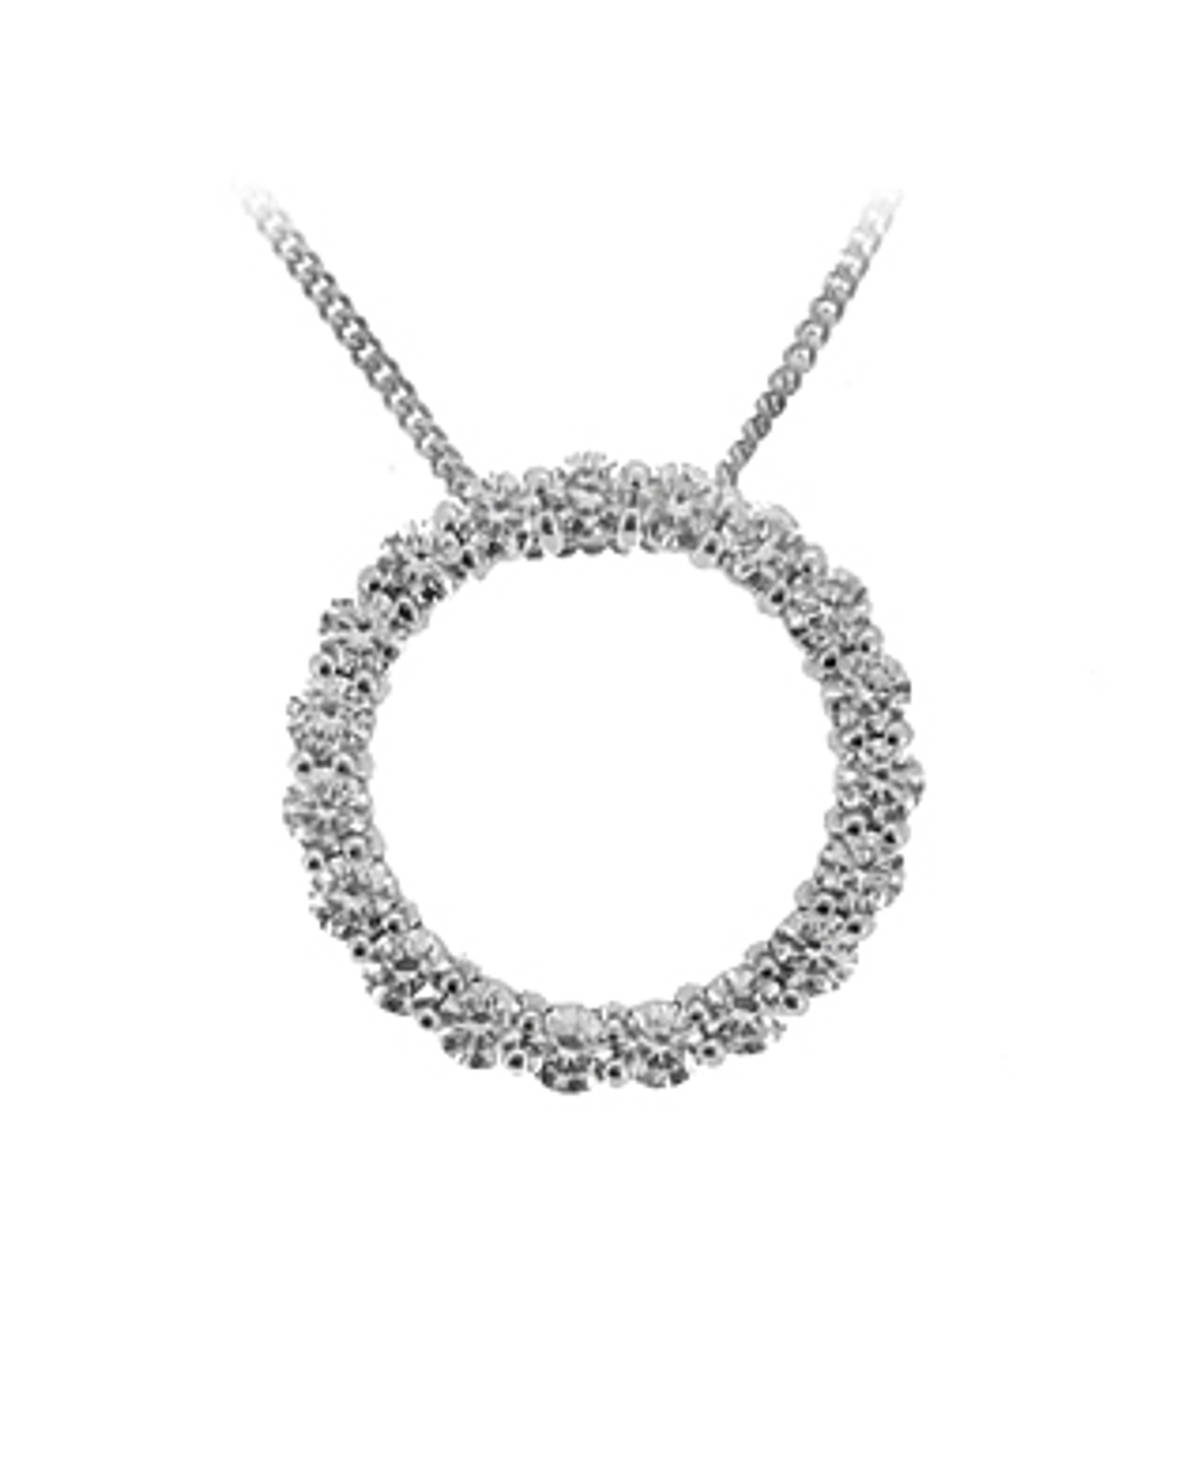 "18k White Gold Brilliant Cut Diamond Circle Pendant On 18k White Gold 18"" Chain Total diamond weight 1.81cts  Pendant length 2.1cmPendant width 2.1cm"